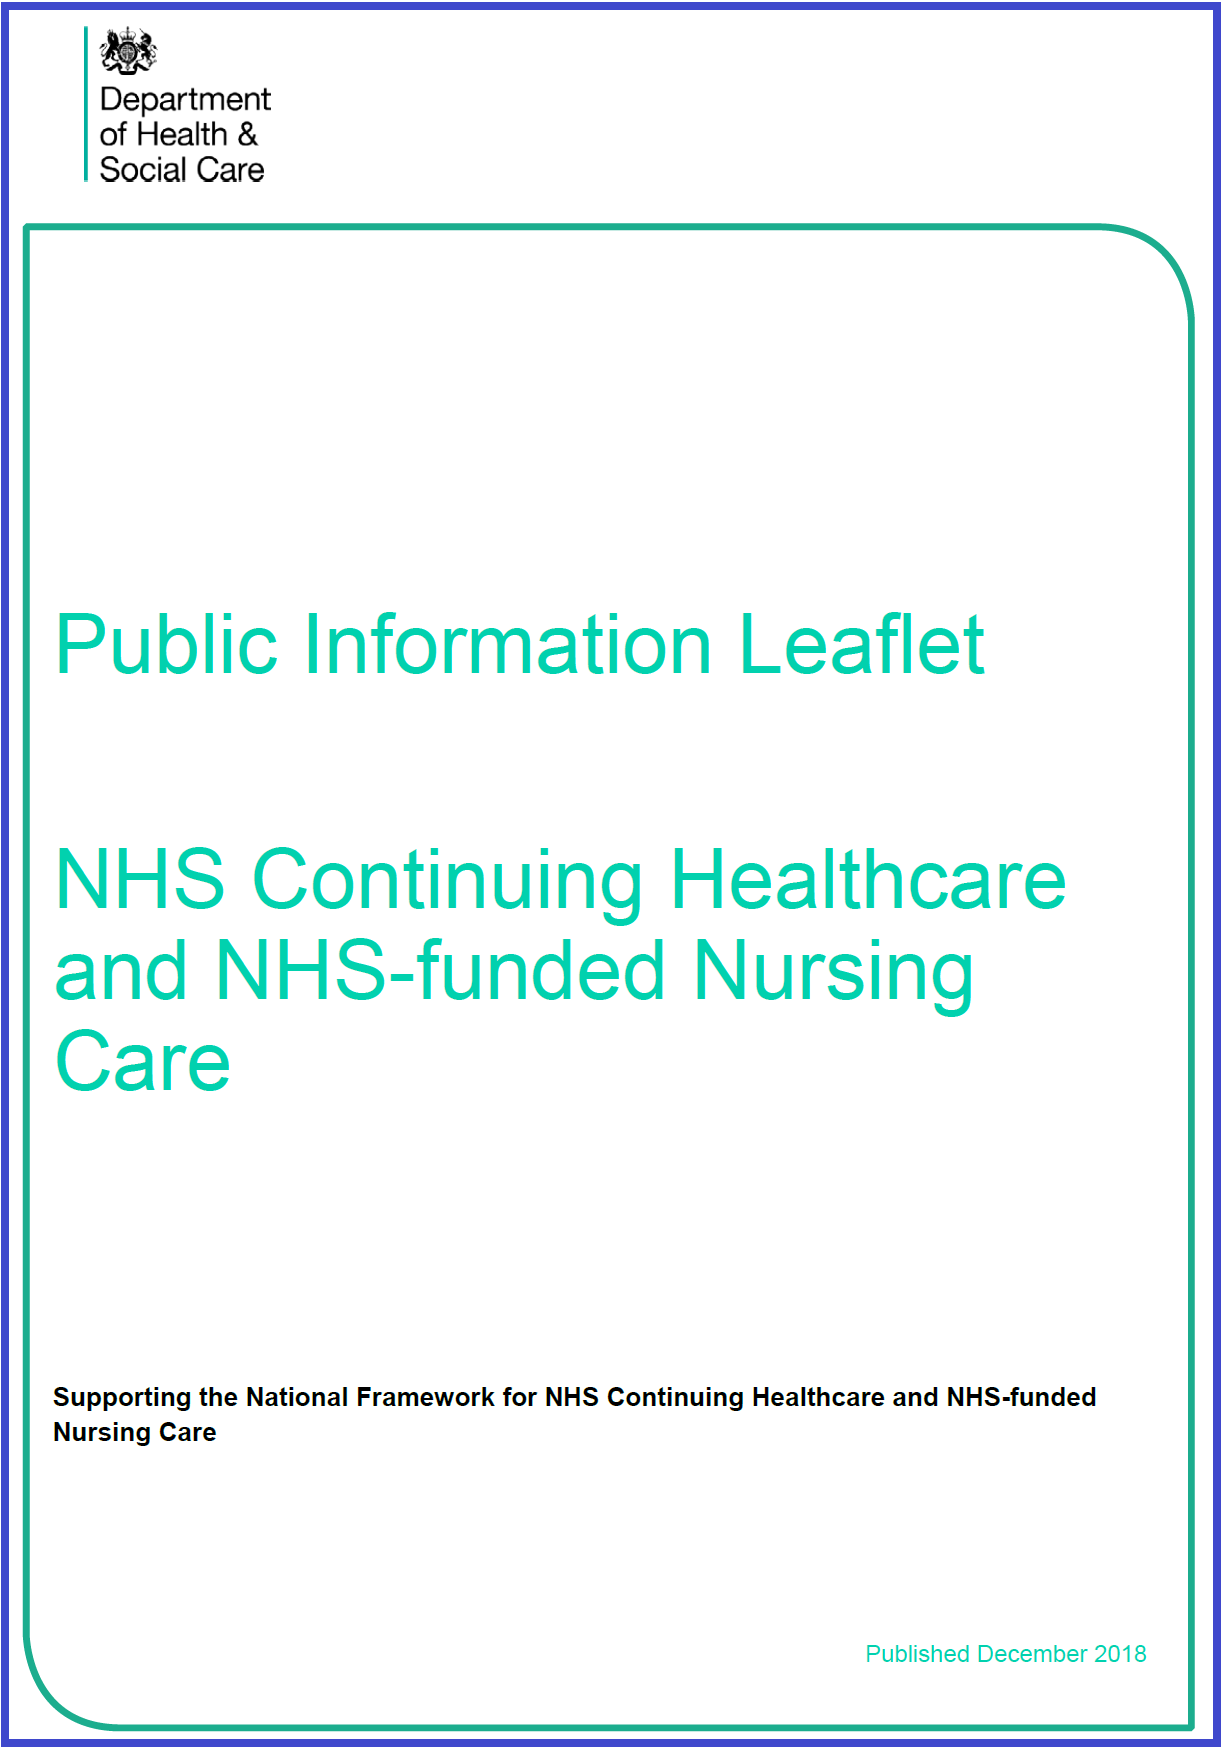 NHS Continuing Healthcare and NHS-funded Nursing Care